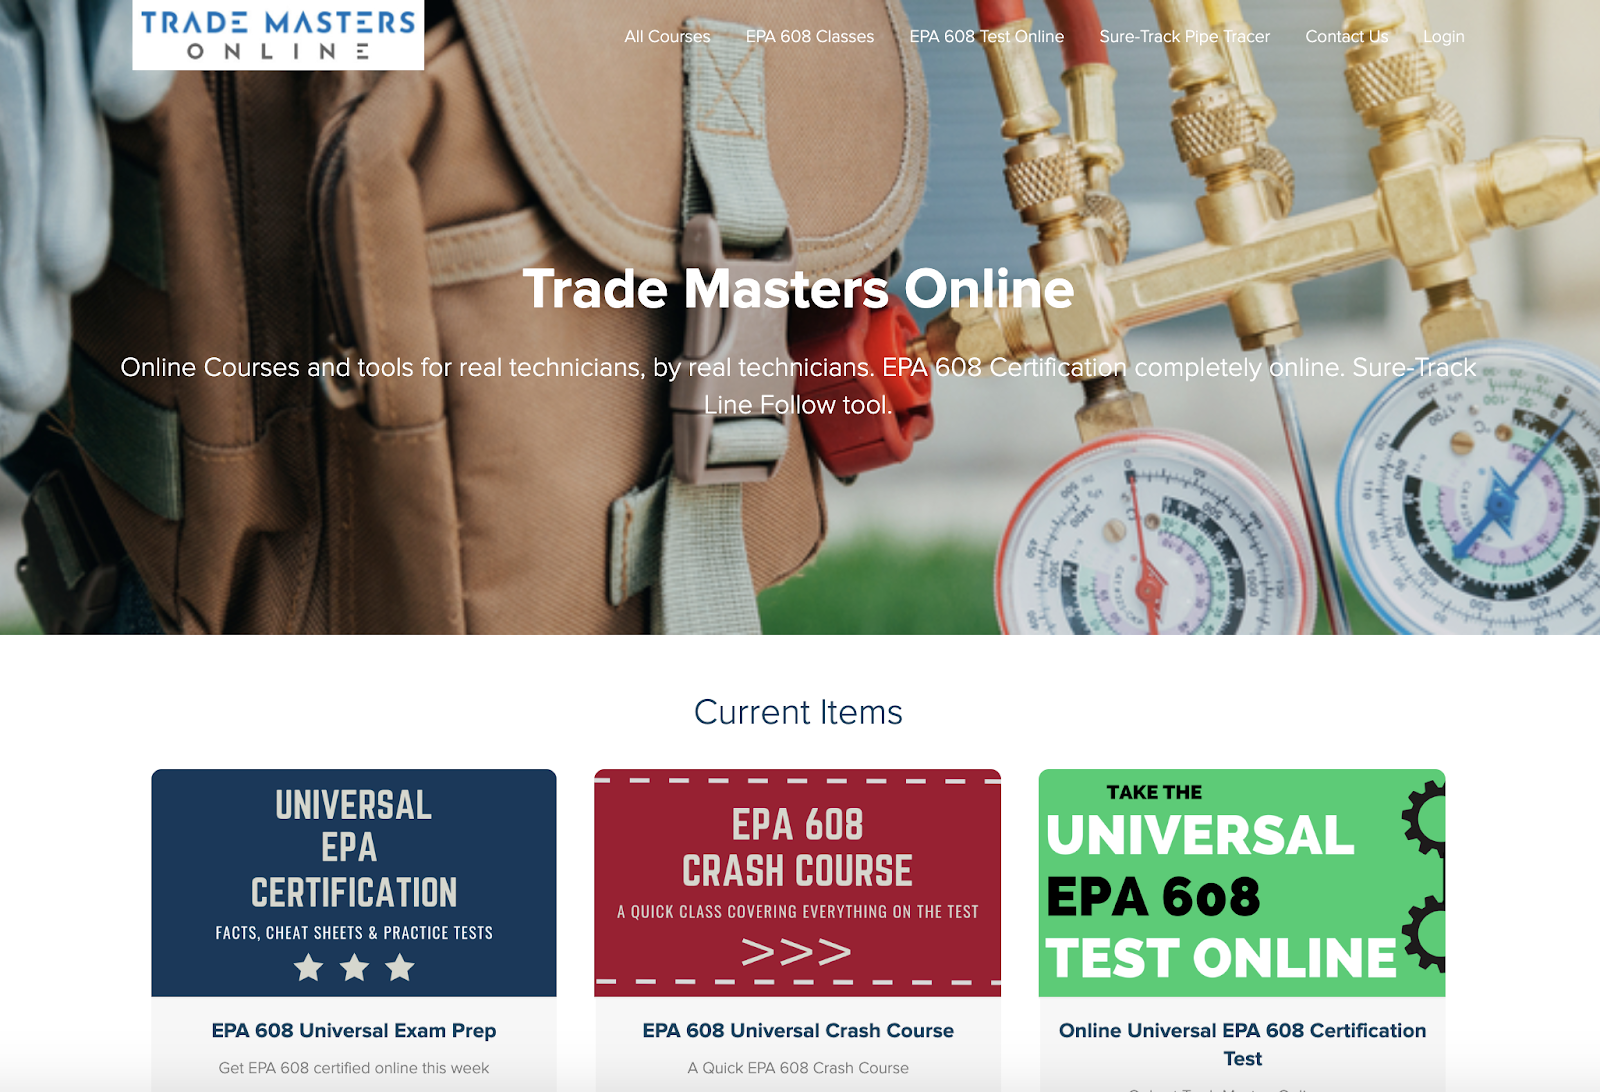 trade masters online plumbing side hustle website